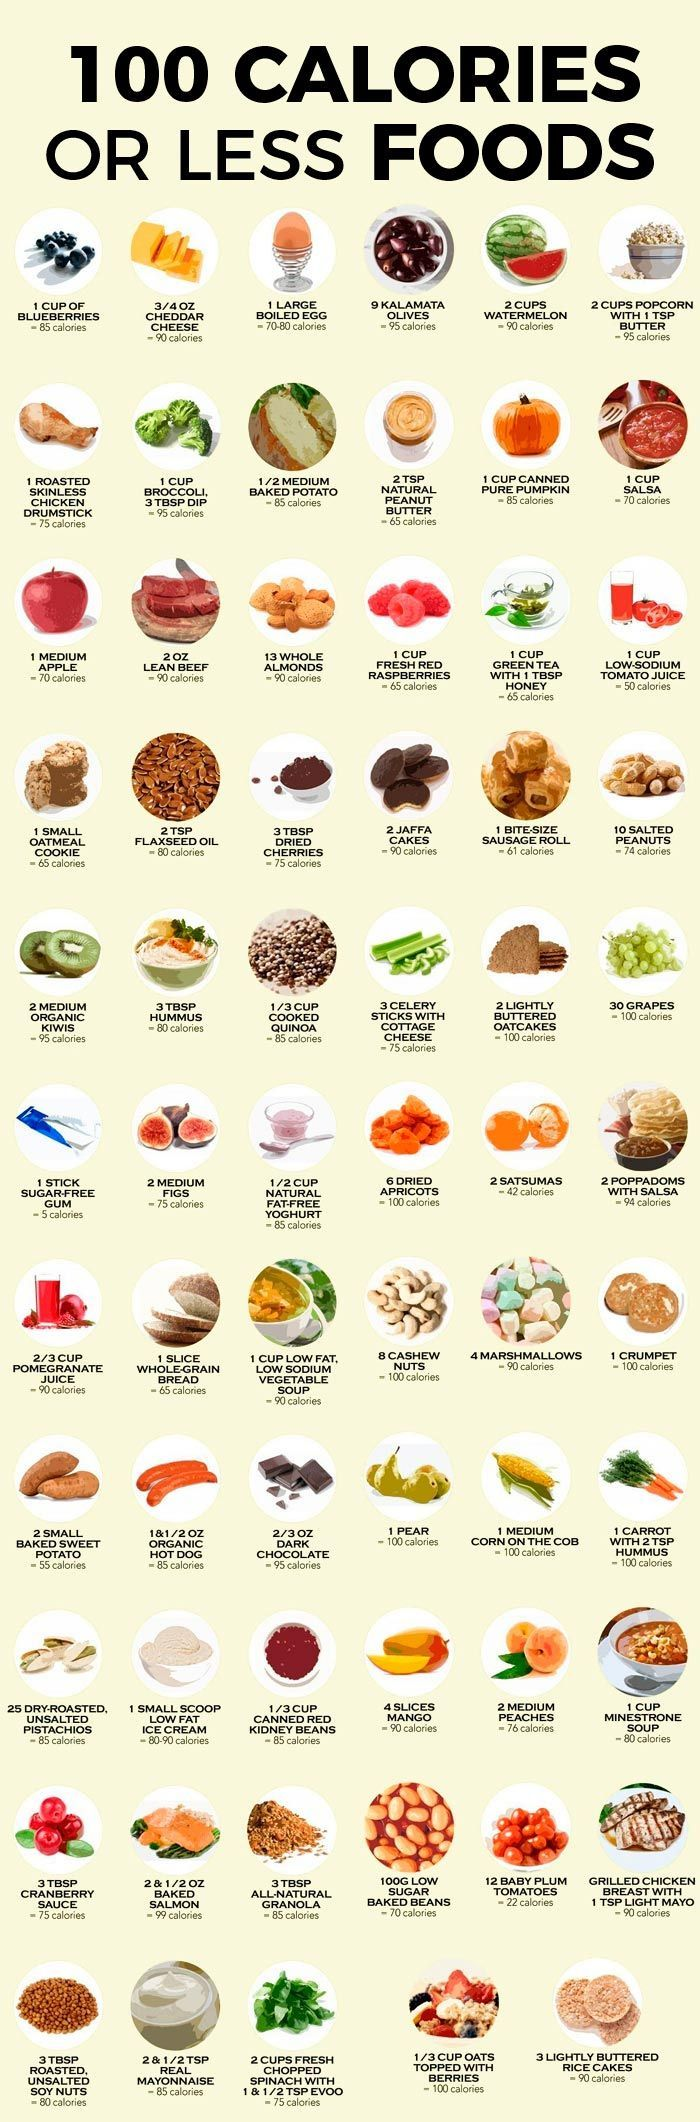 100 calories or less foods(Fitness Recipes Meal Planning)